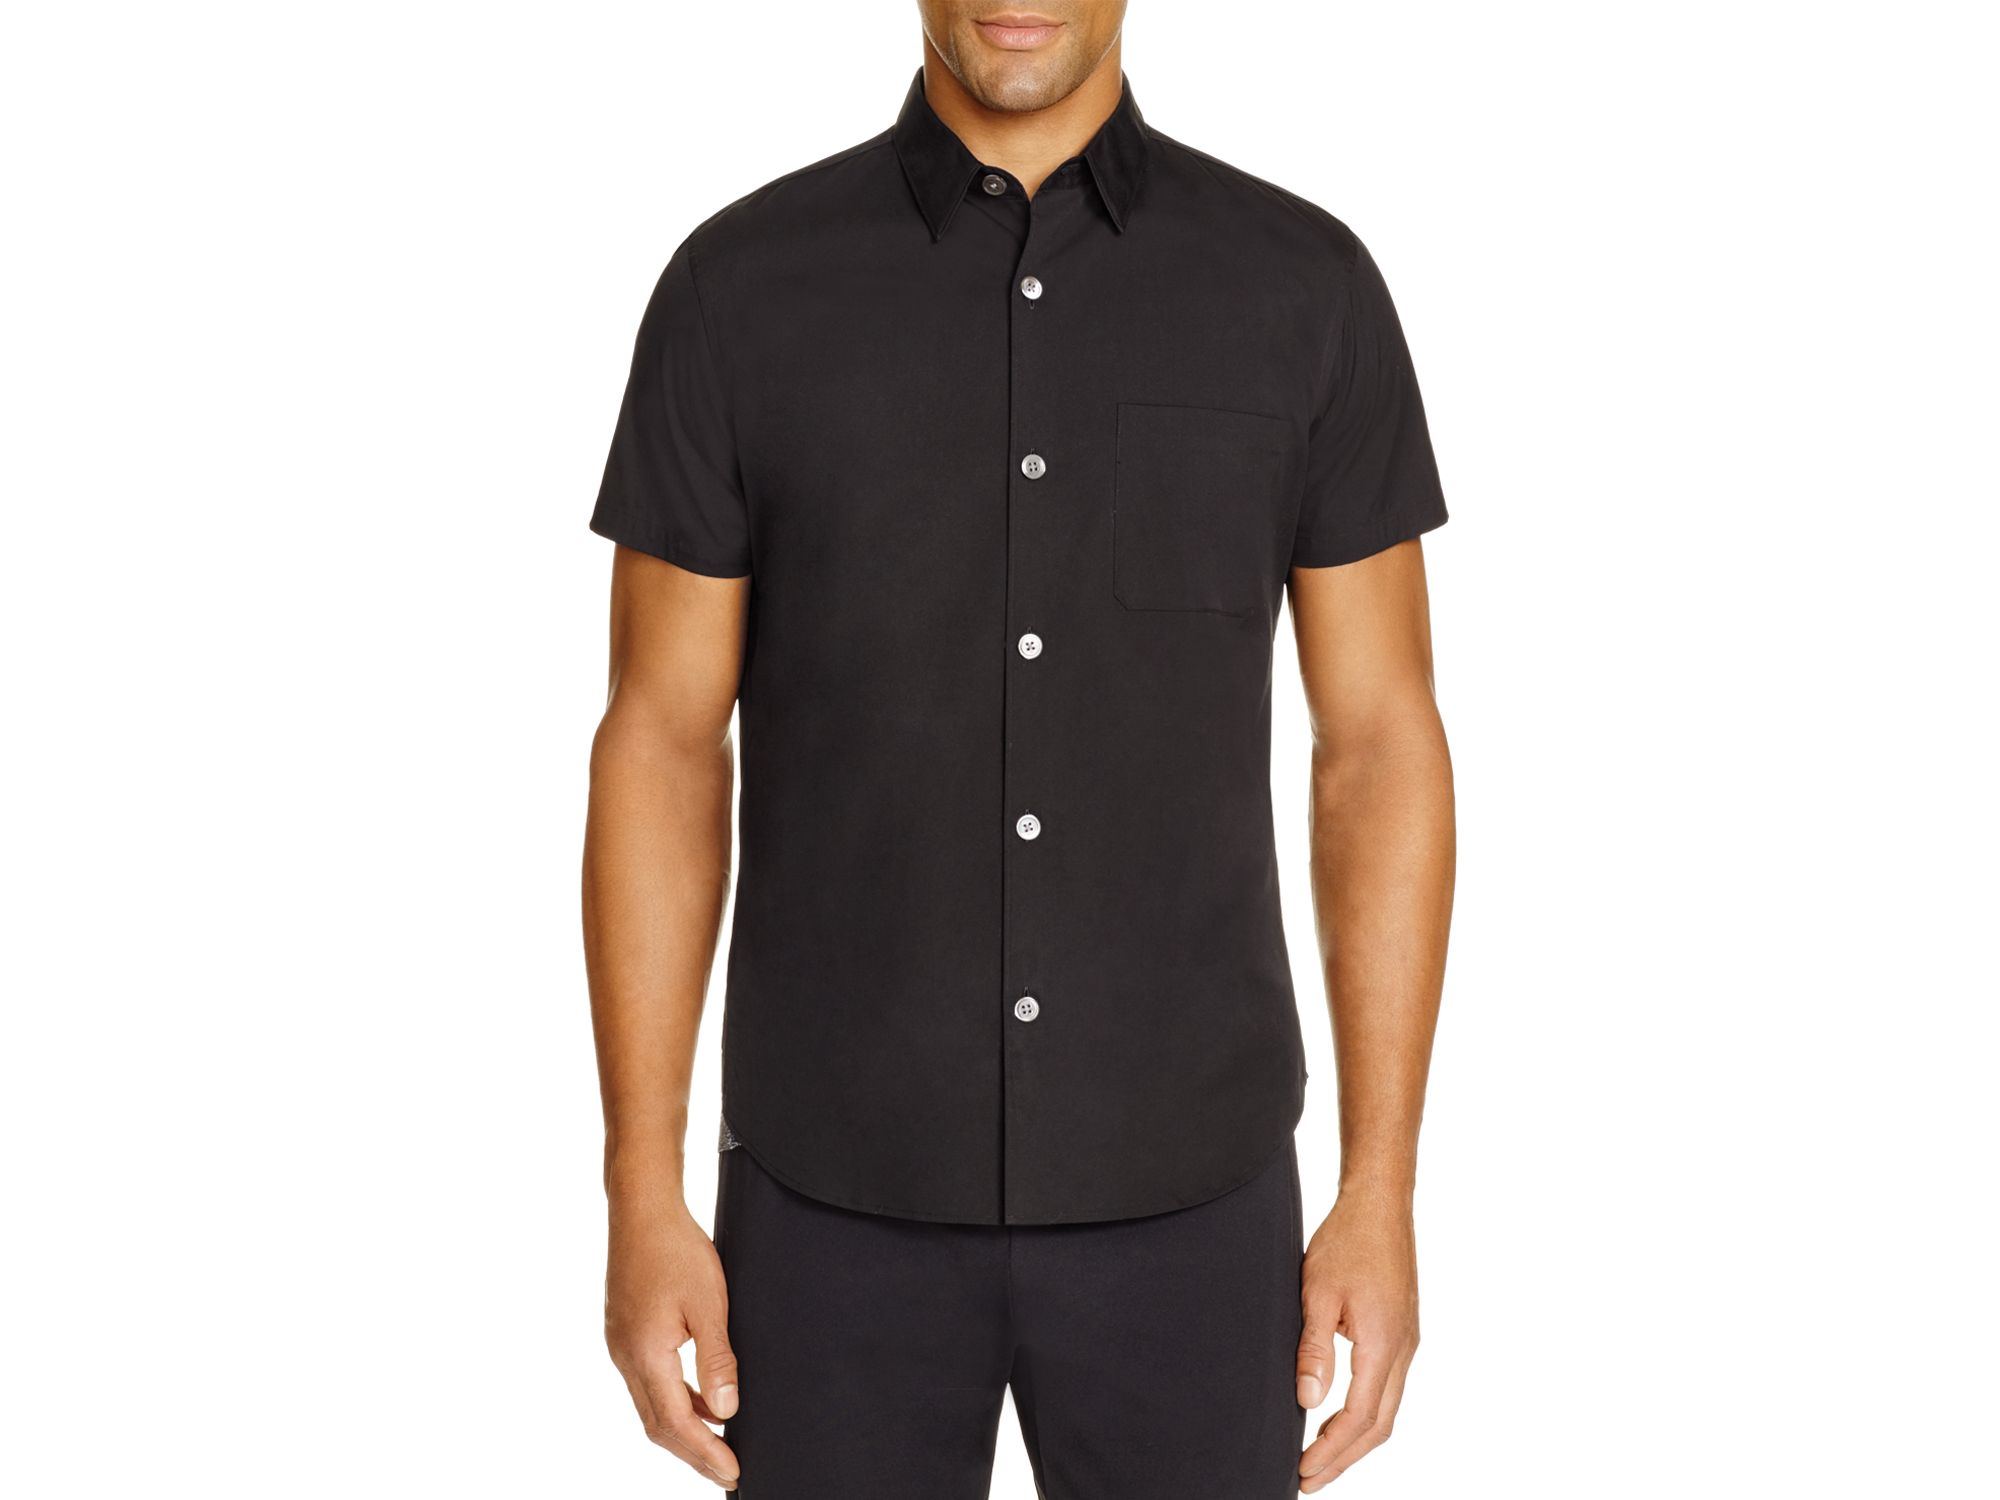 Slim Fit Button Down Short Sleeve Shirts | Artee Shirt